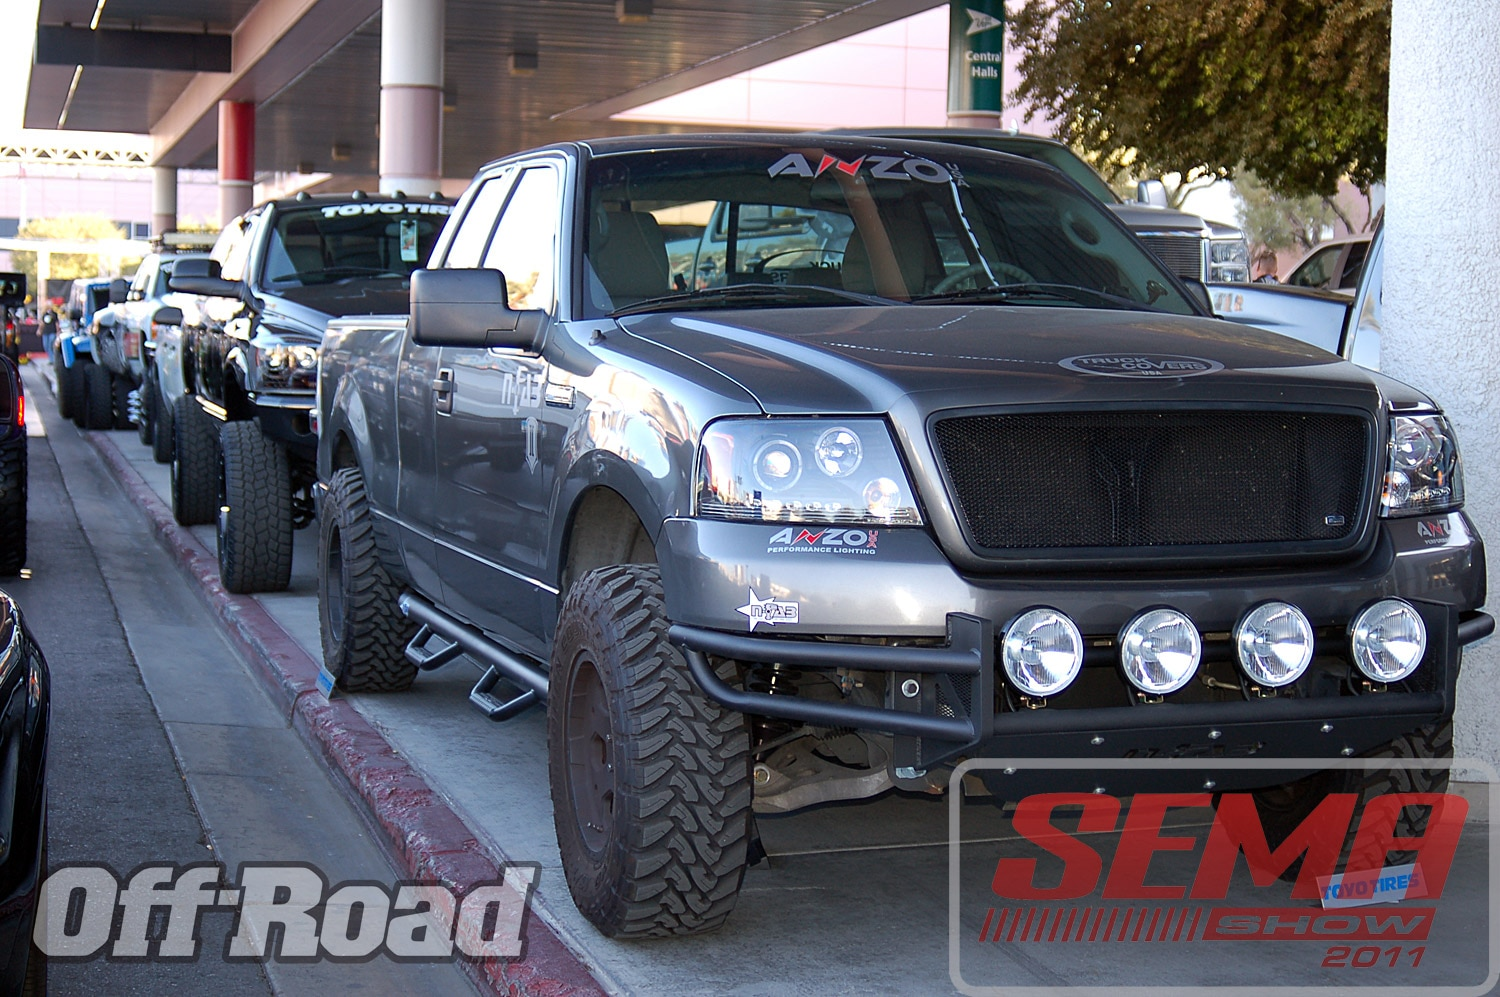 102312or 0130+2011 sema show+off road trucks and products